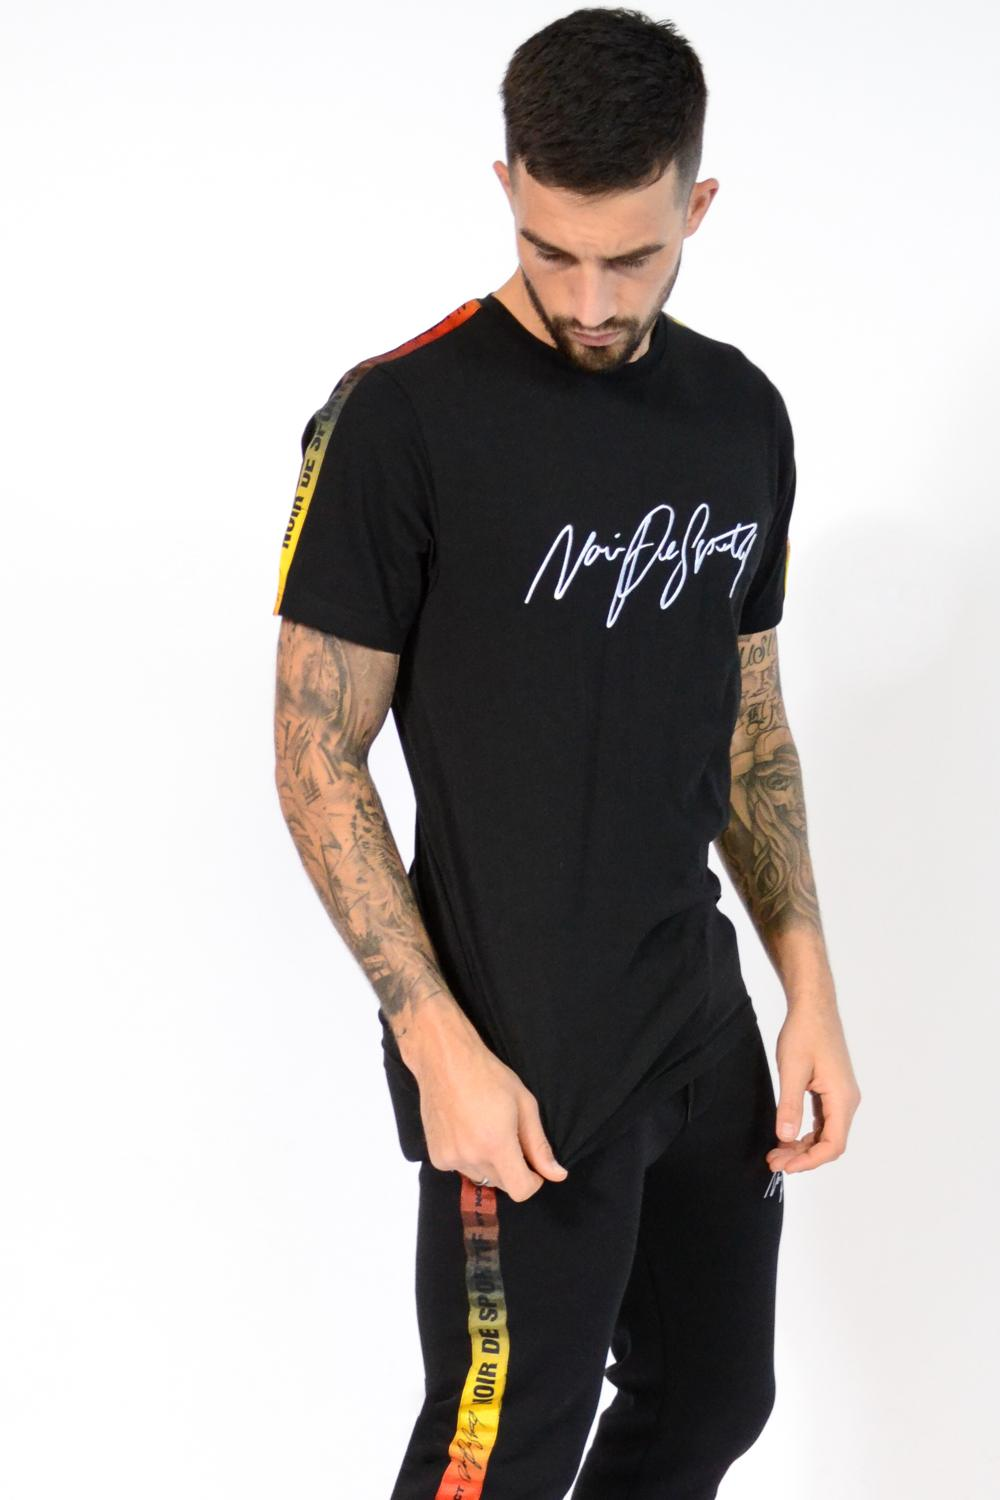 Noir De Sportif Fire T-Shirt - Black - 2